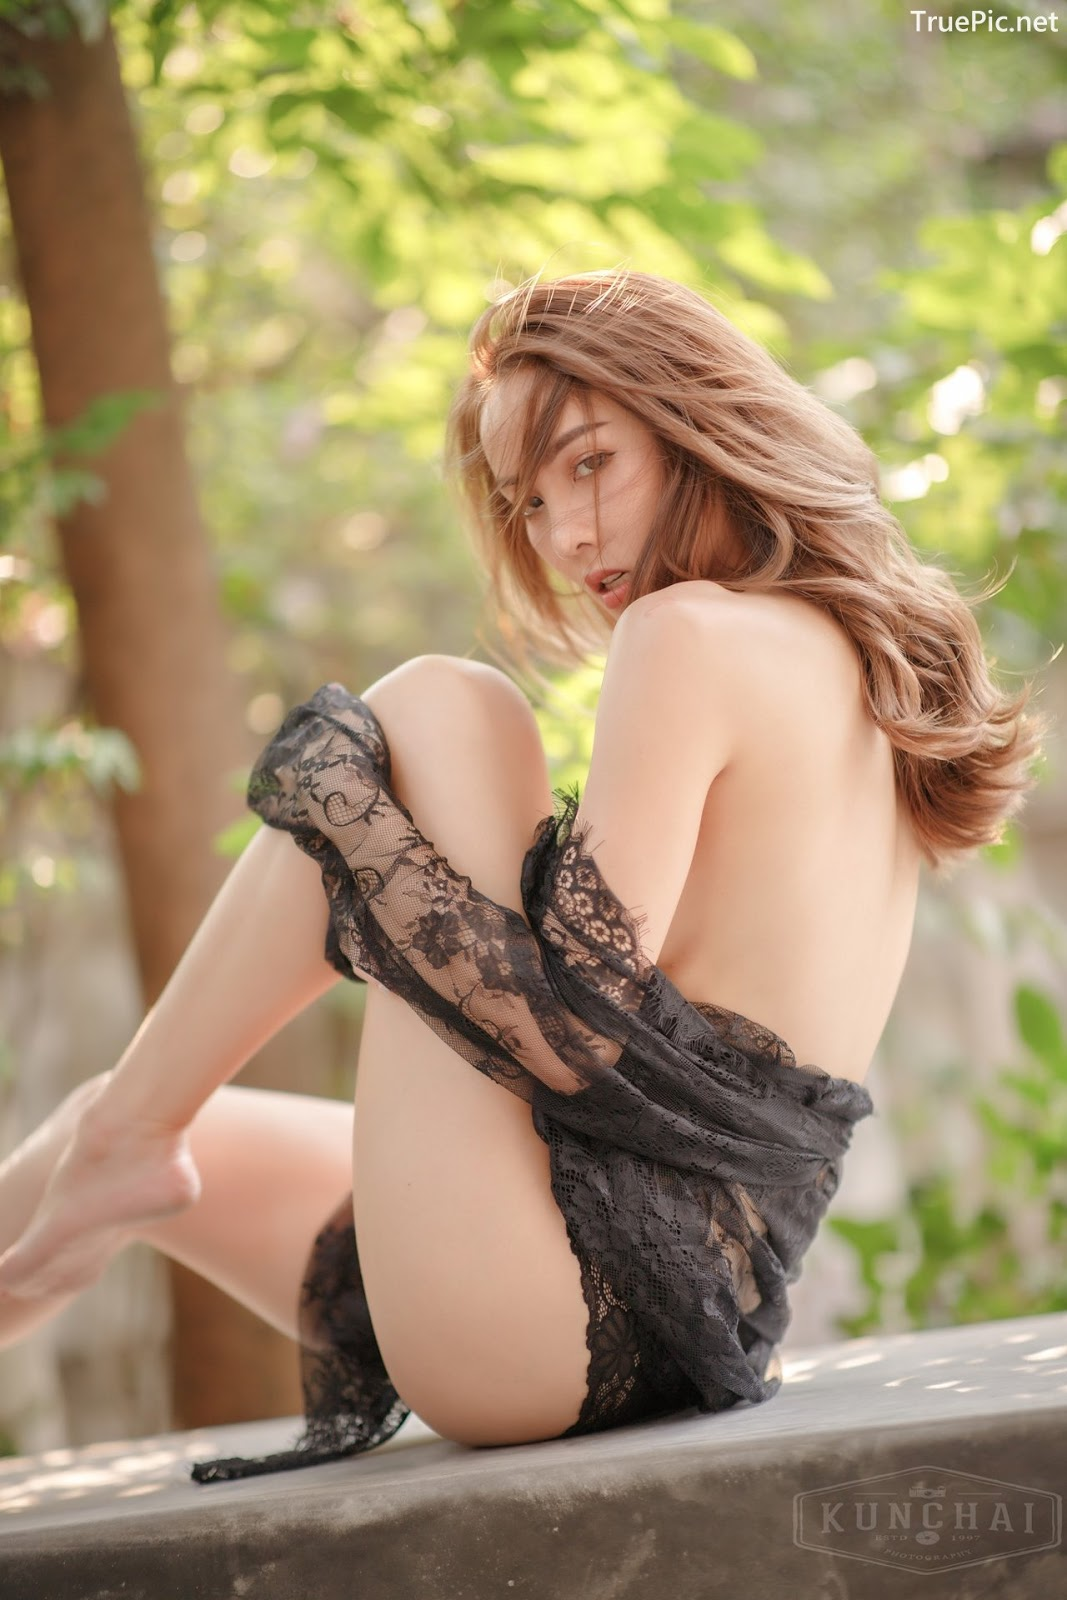 Image Thailand Sexy Model - Soraya Upaiprom - Black Lace Lingerie - TruePic.net - Picture-3